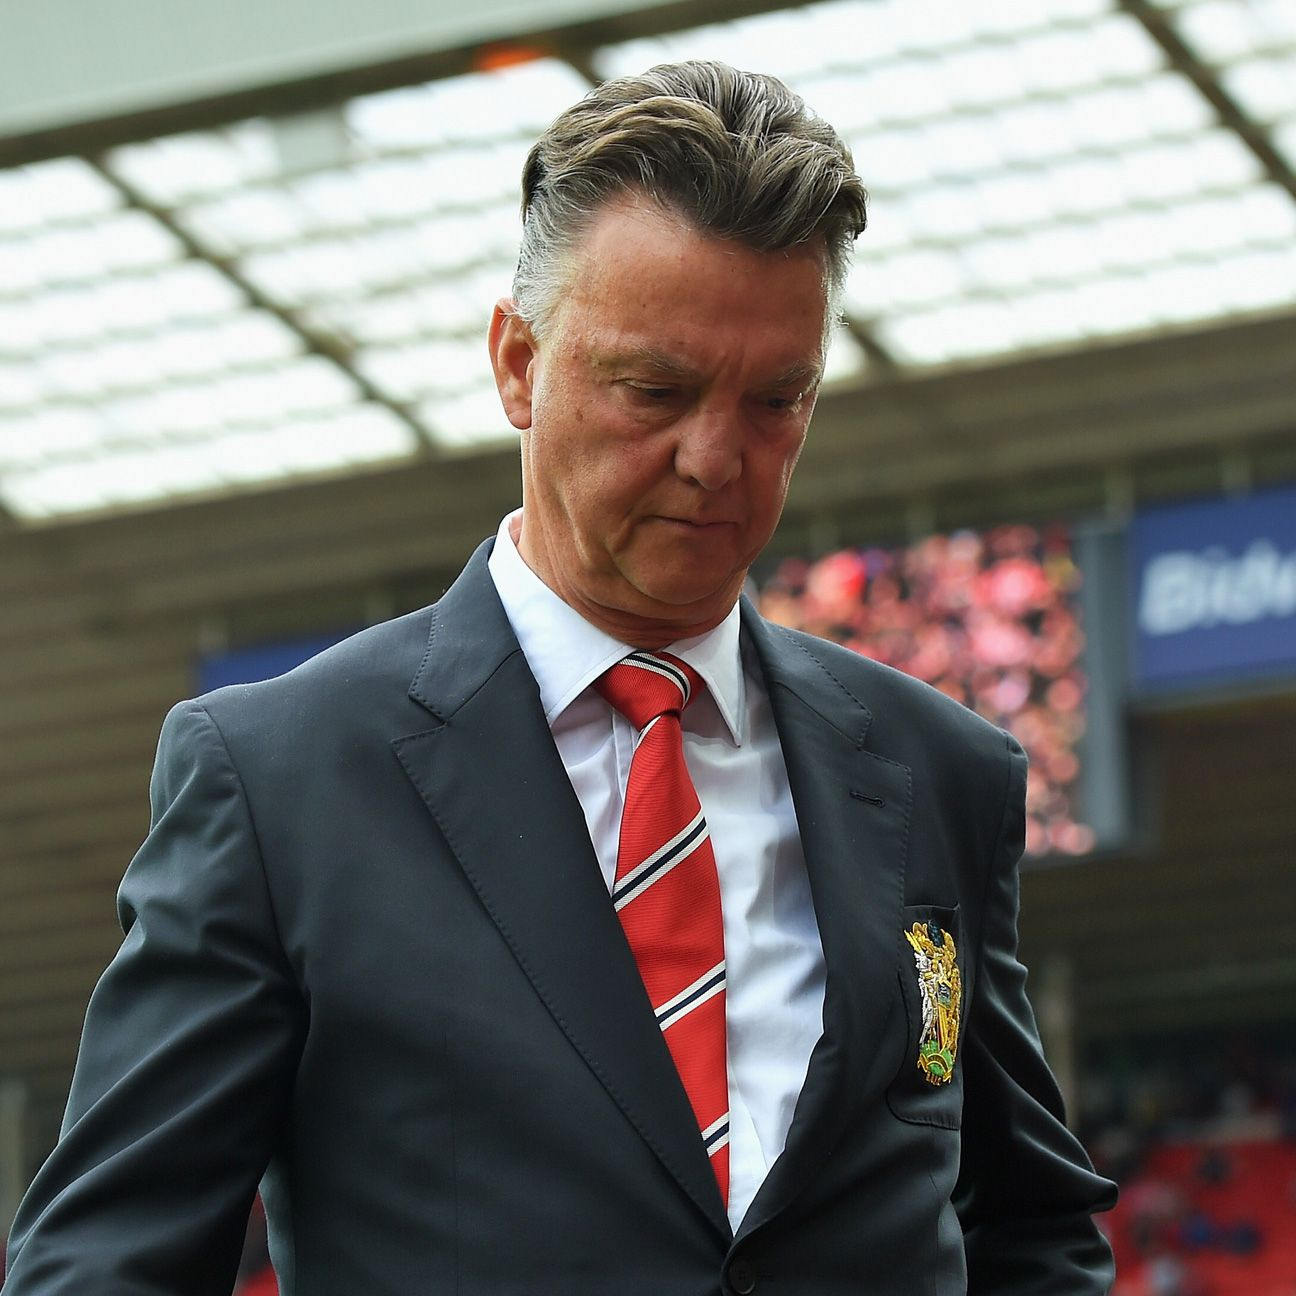 Louis van Gaal's back line has already been gashed on a few occasions this season, including a forgettable five goals allowed at newly promoted Leicester City.